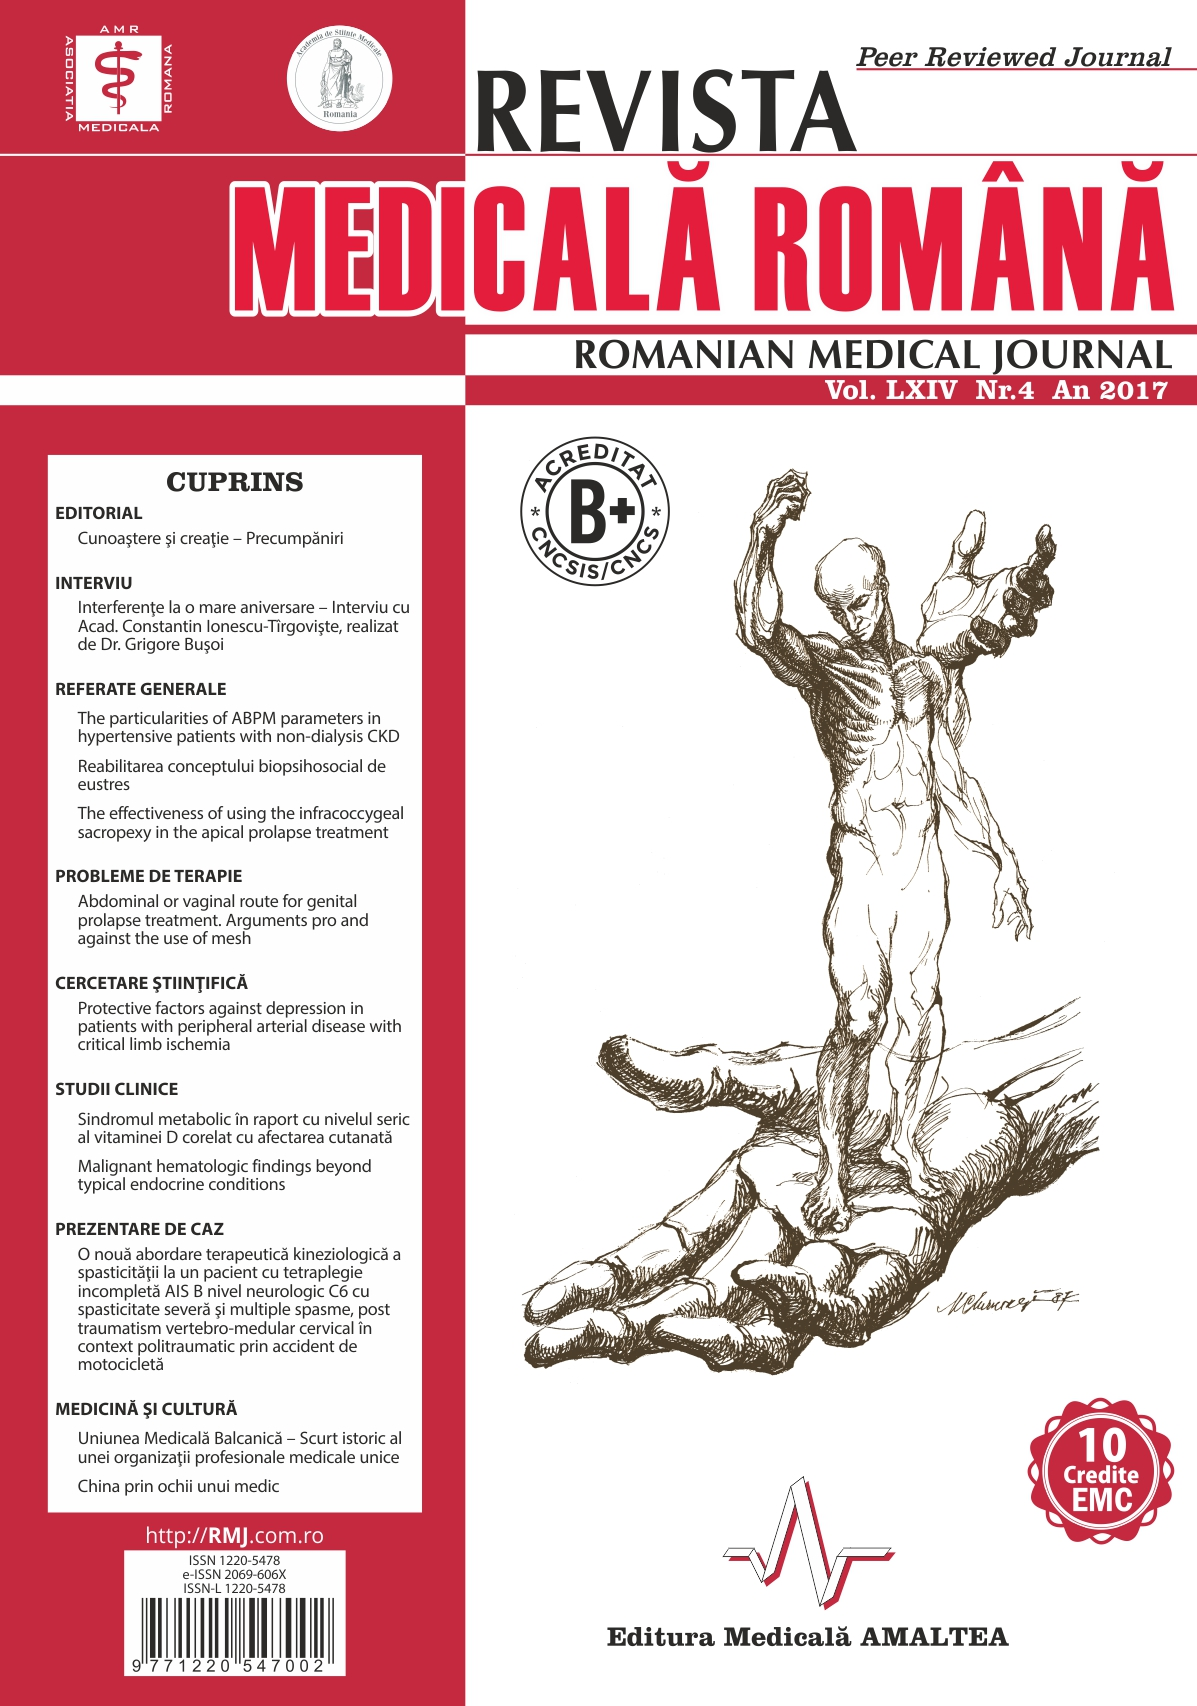 REVISTA MEDICALA ROMANA - Romanian Medical Journal, Vol. LXIV, Nr. 4, An 2017